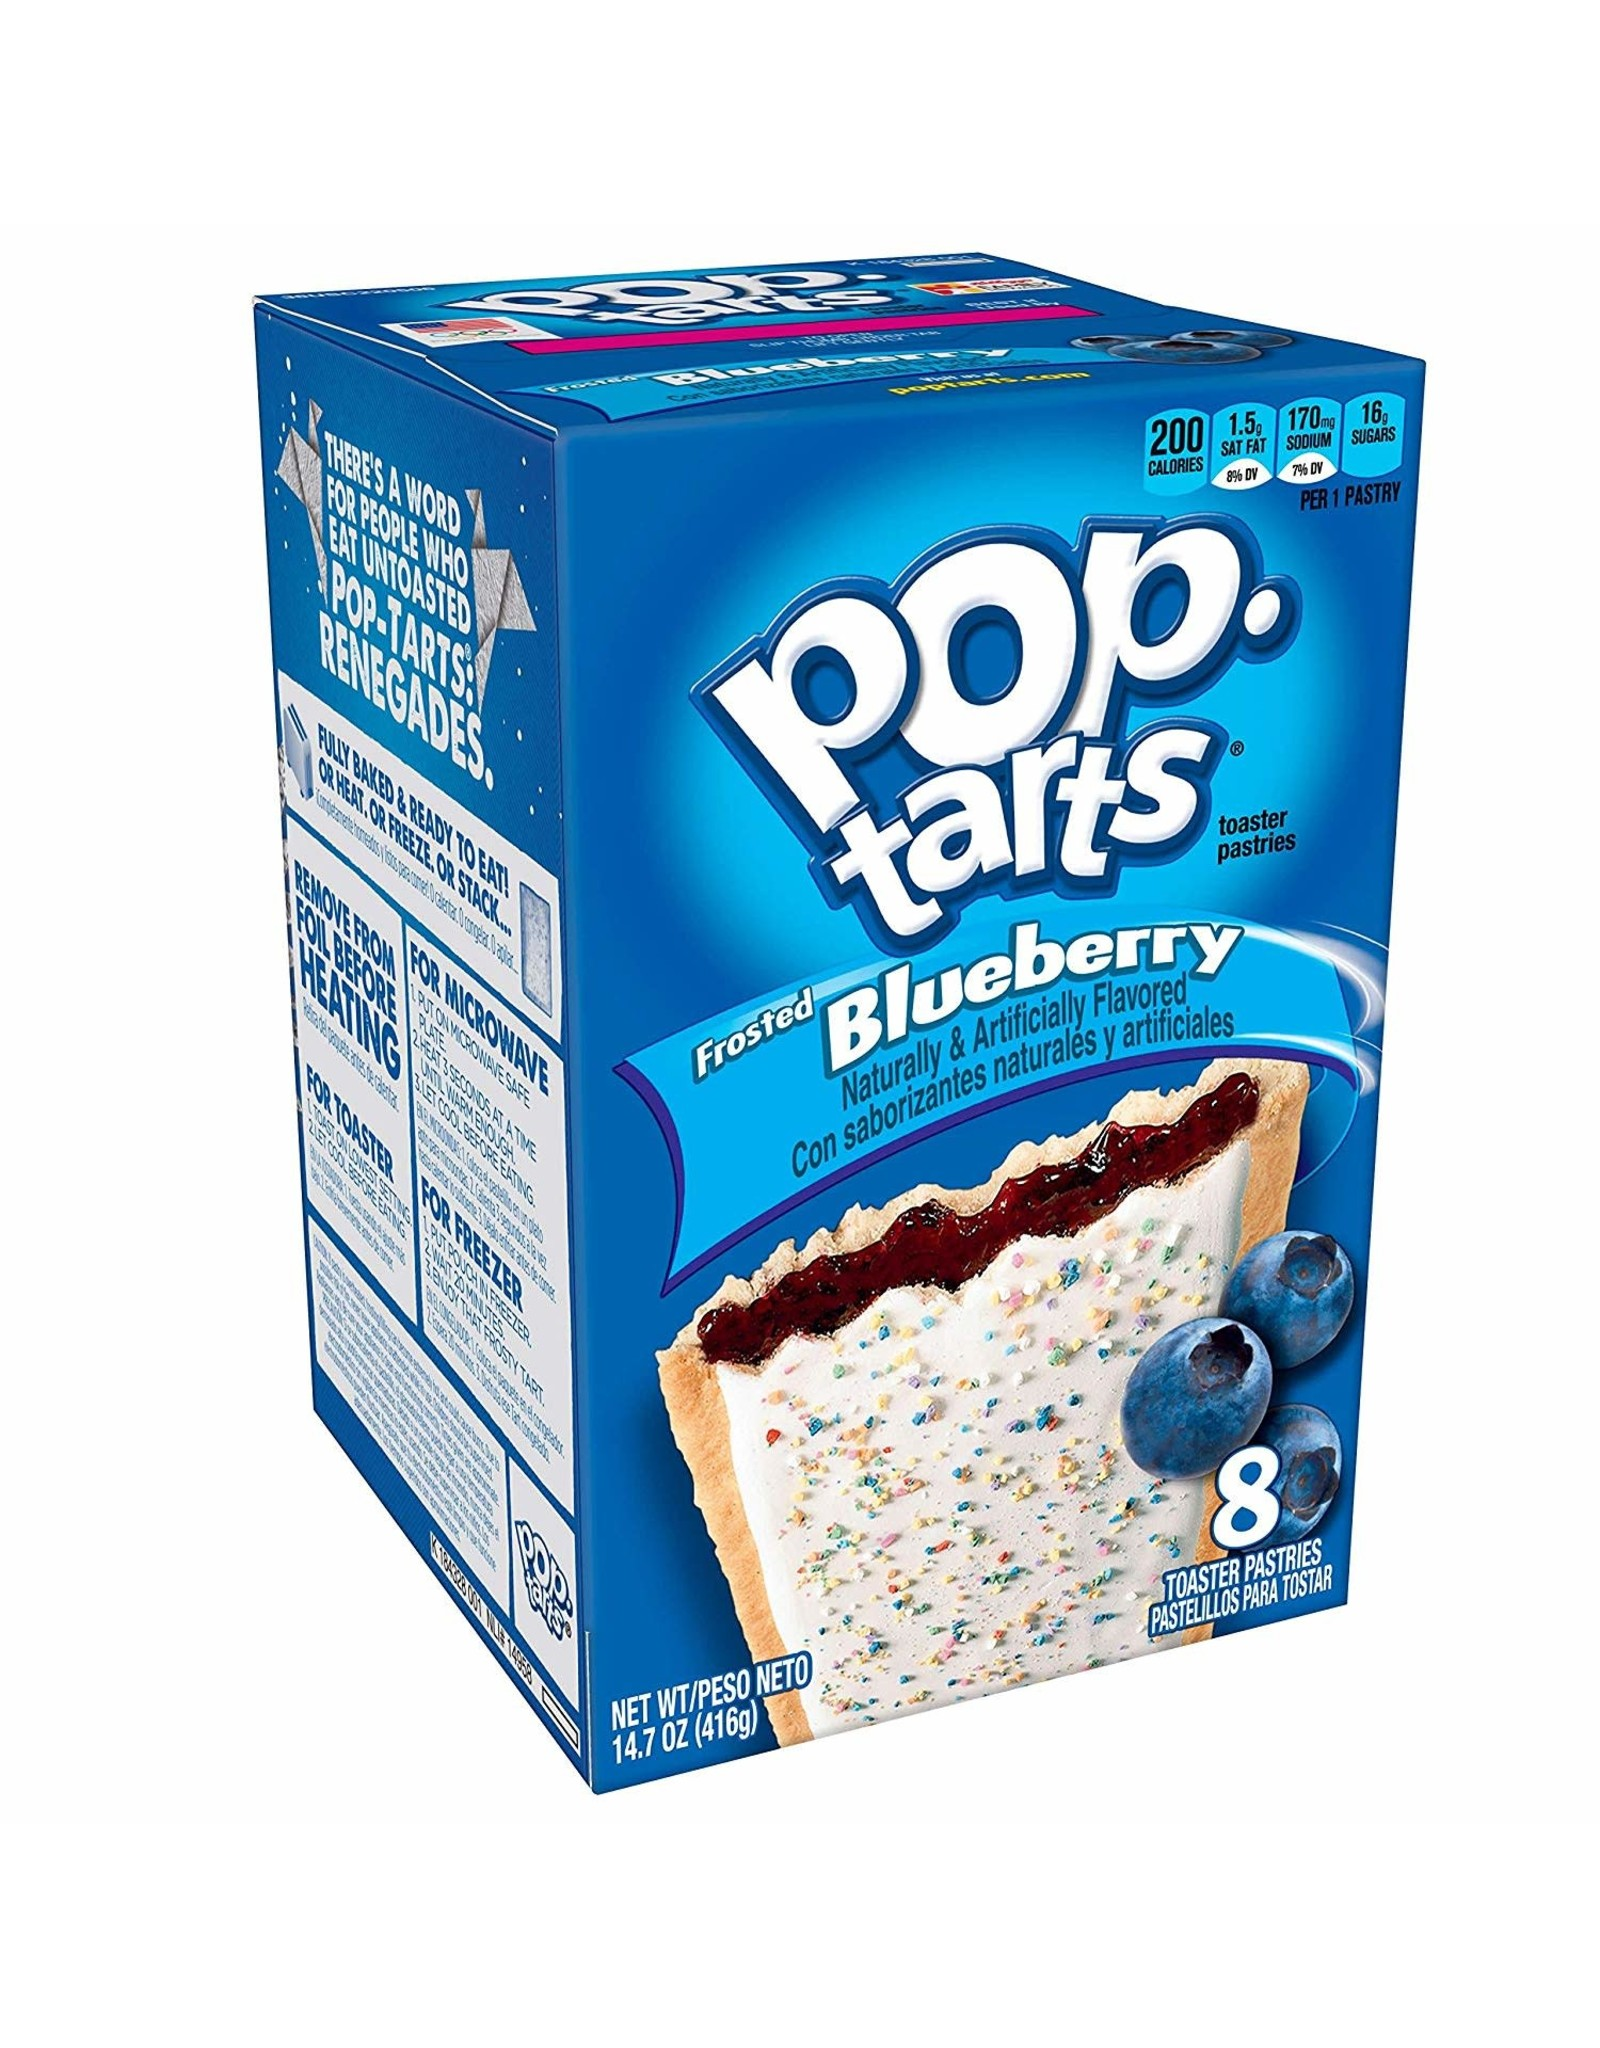 Pop-Tarts Frosted Blueberry - 8 Pack